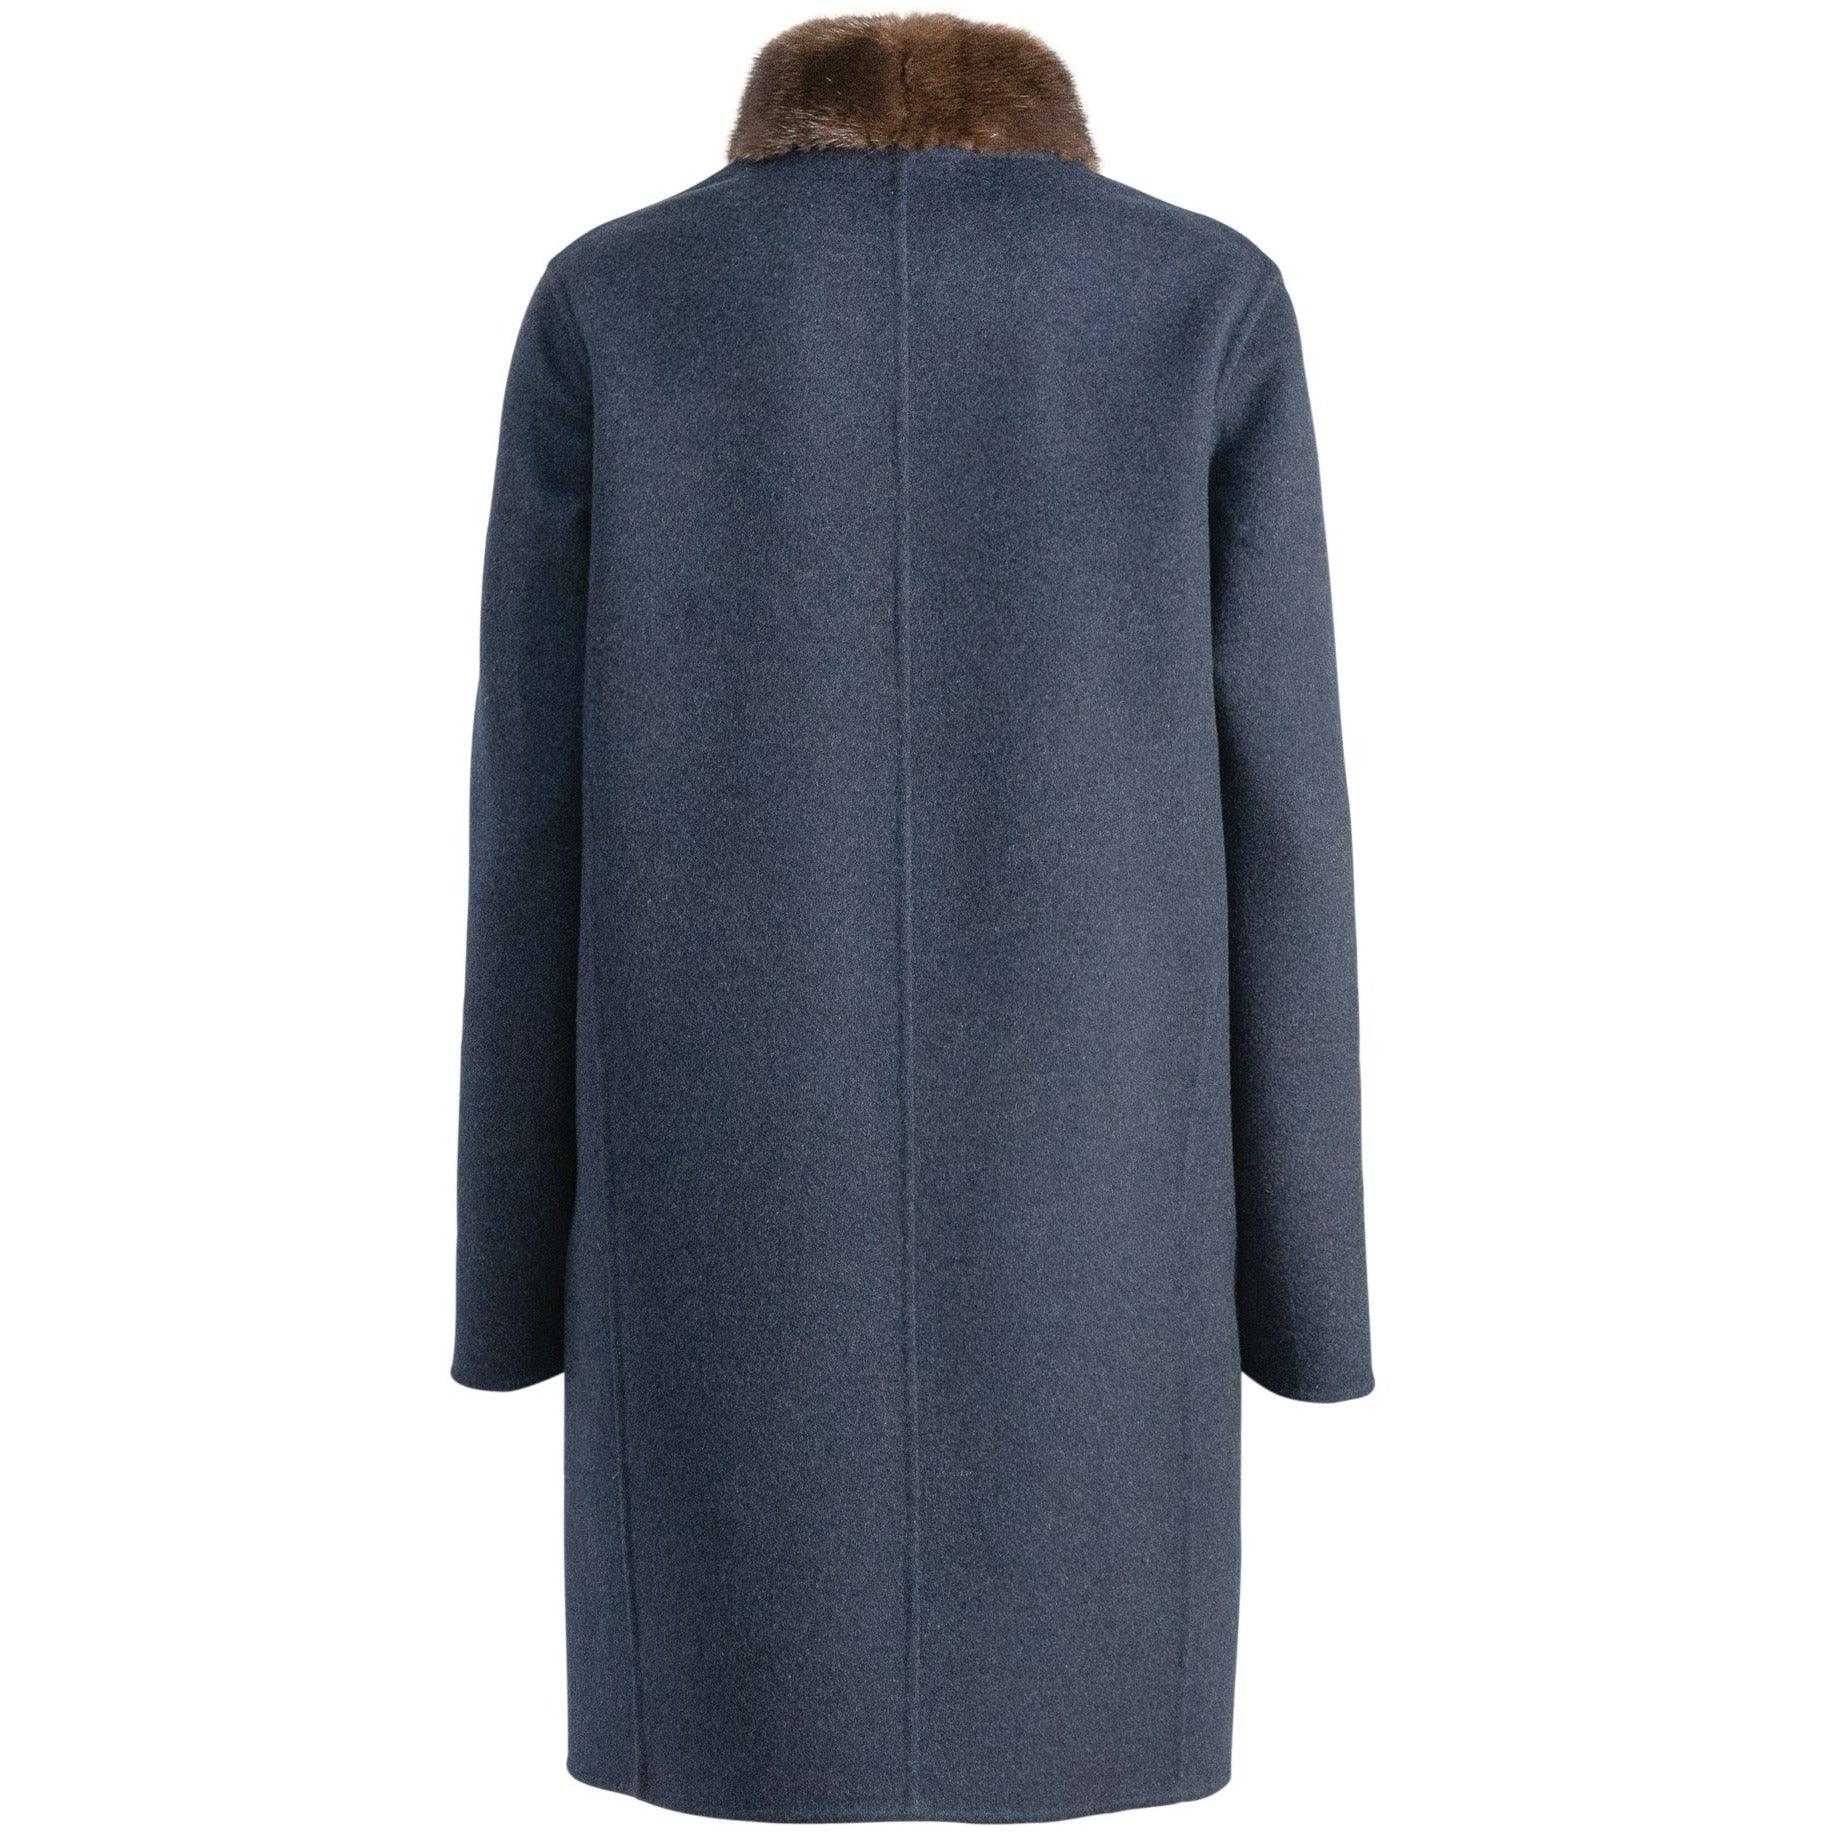 REVERSIBLE CASHMERE LONG COAT WITH MINK COLLAR - ROS2004 New 2020 Collection